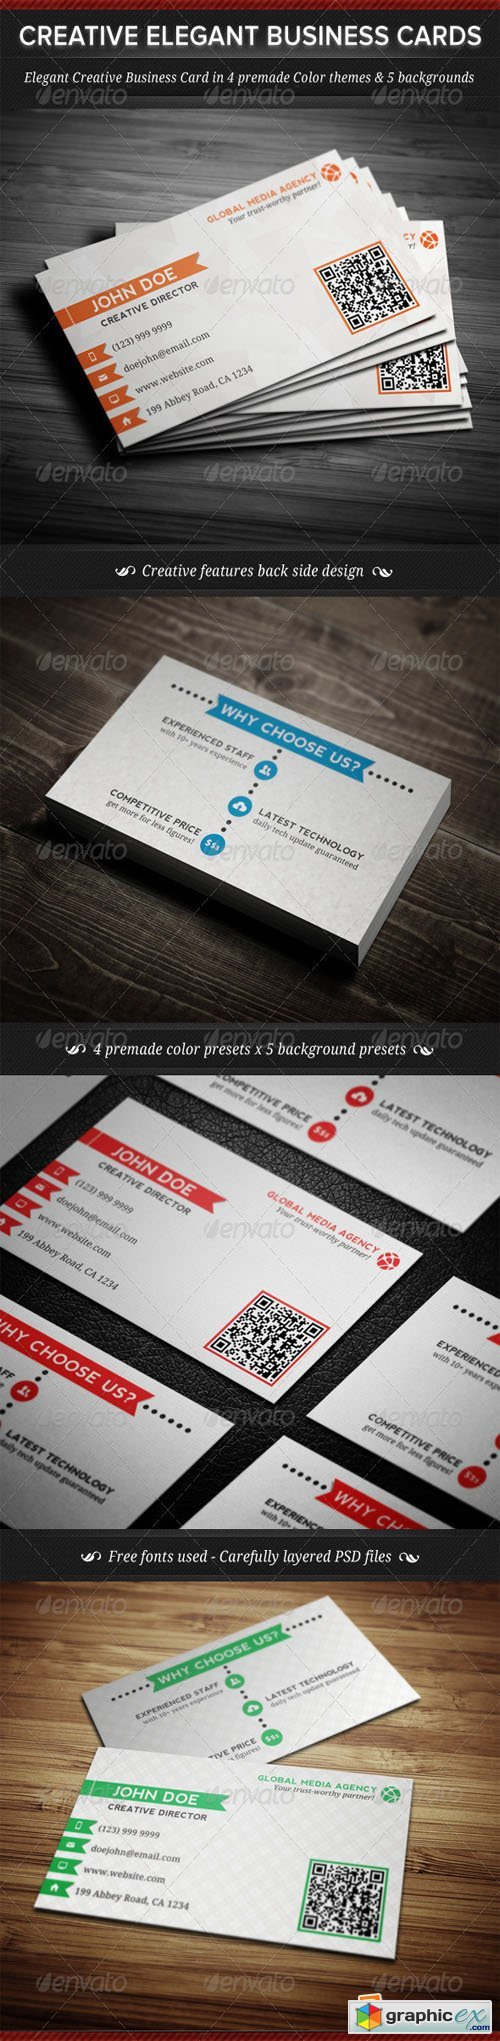 Elegant Creative Business Cards Templates